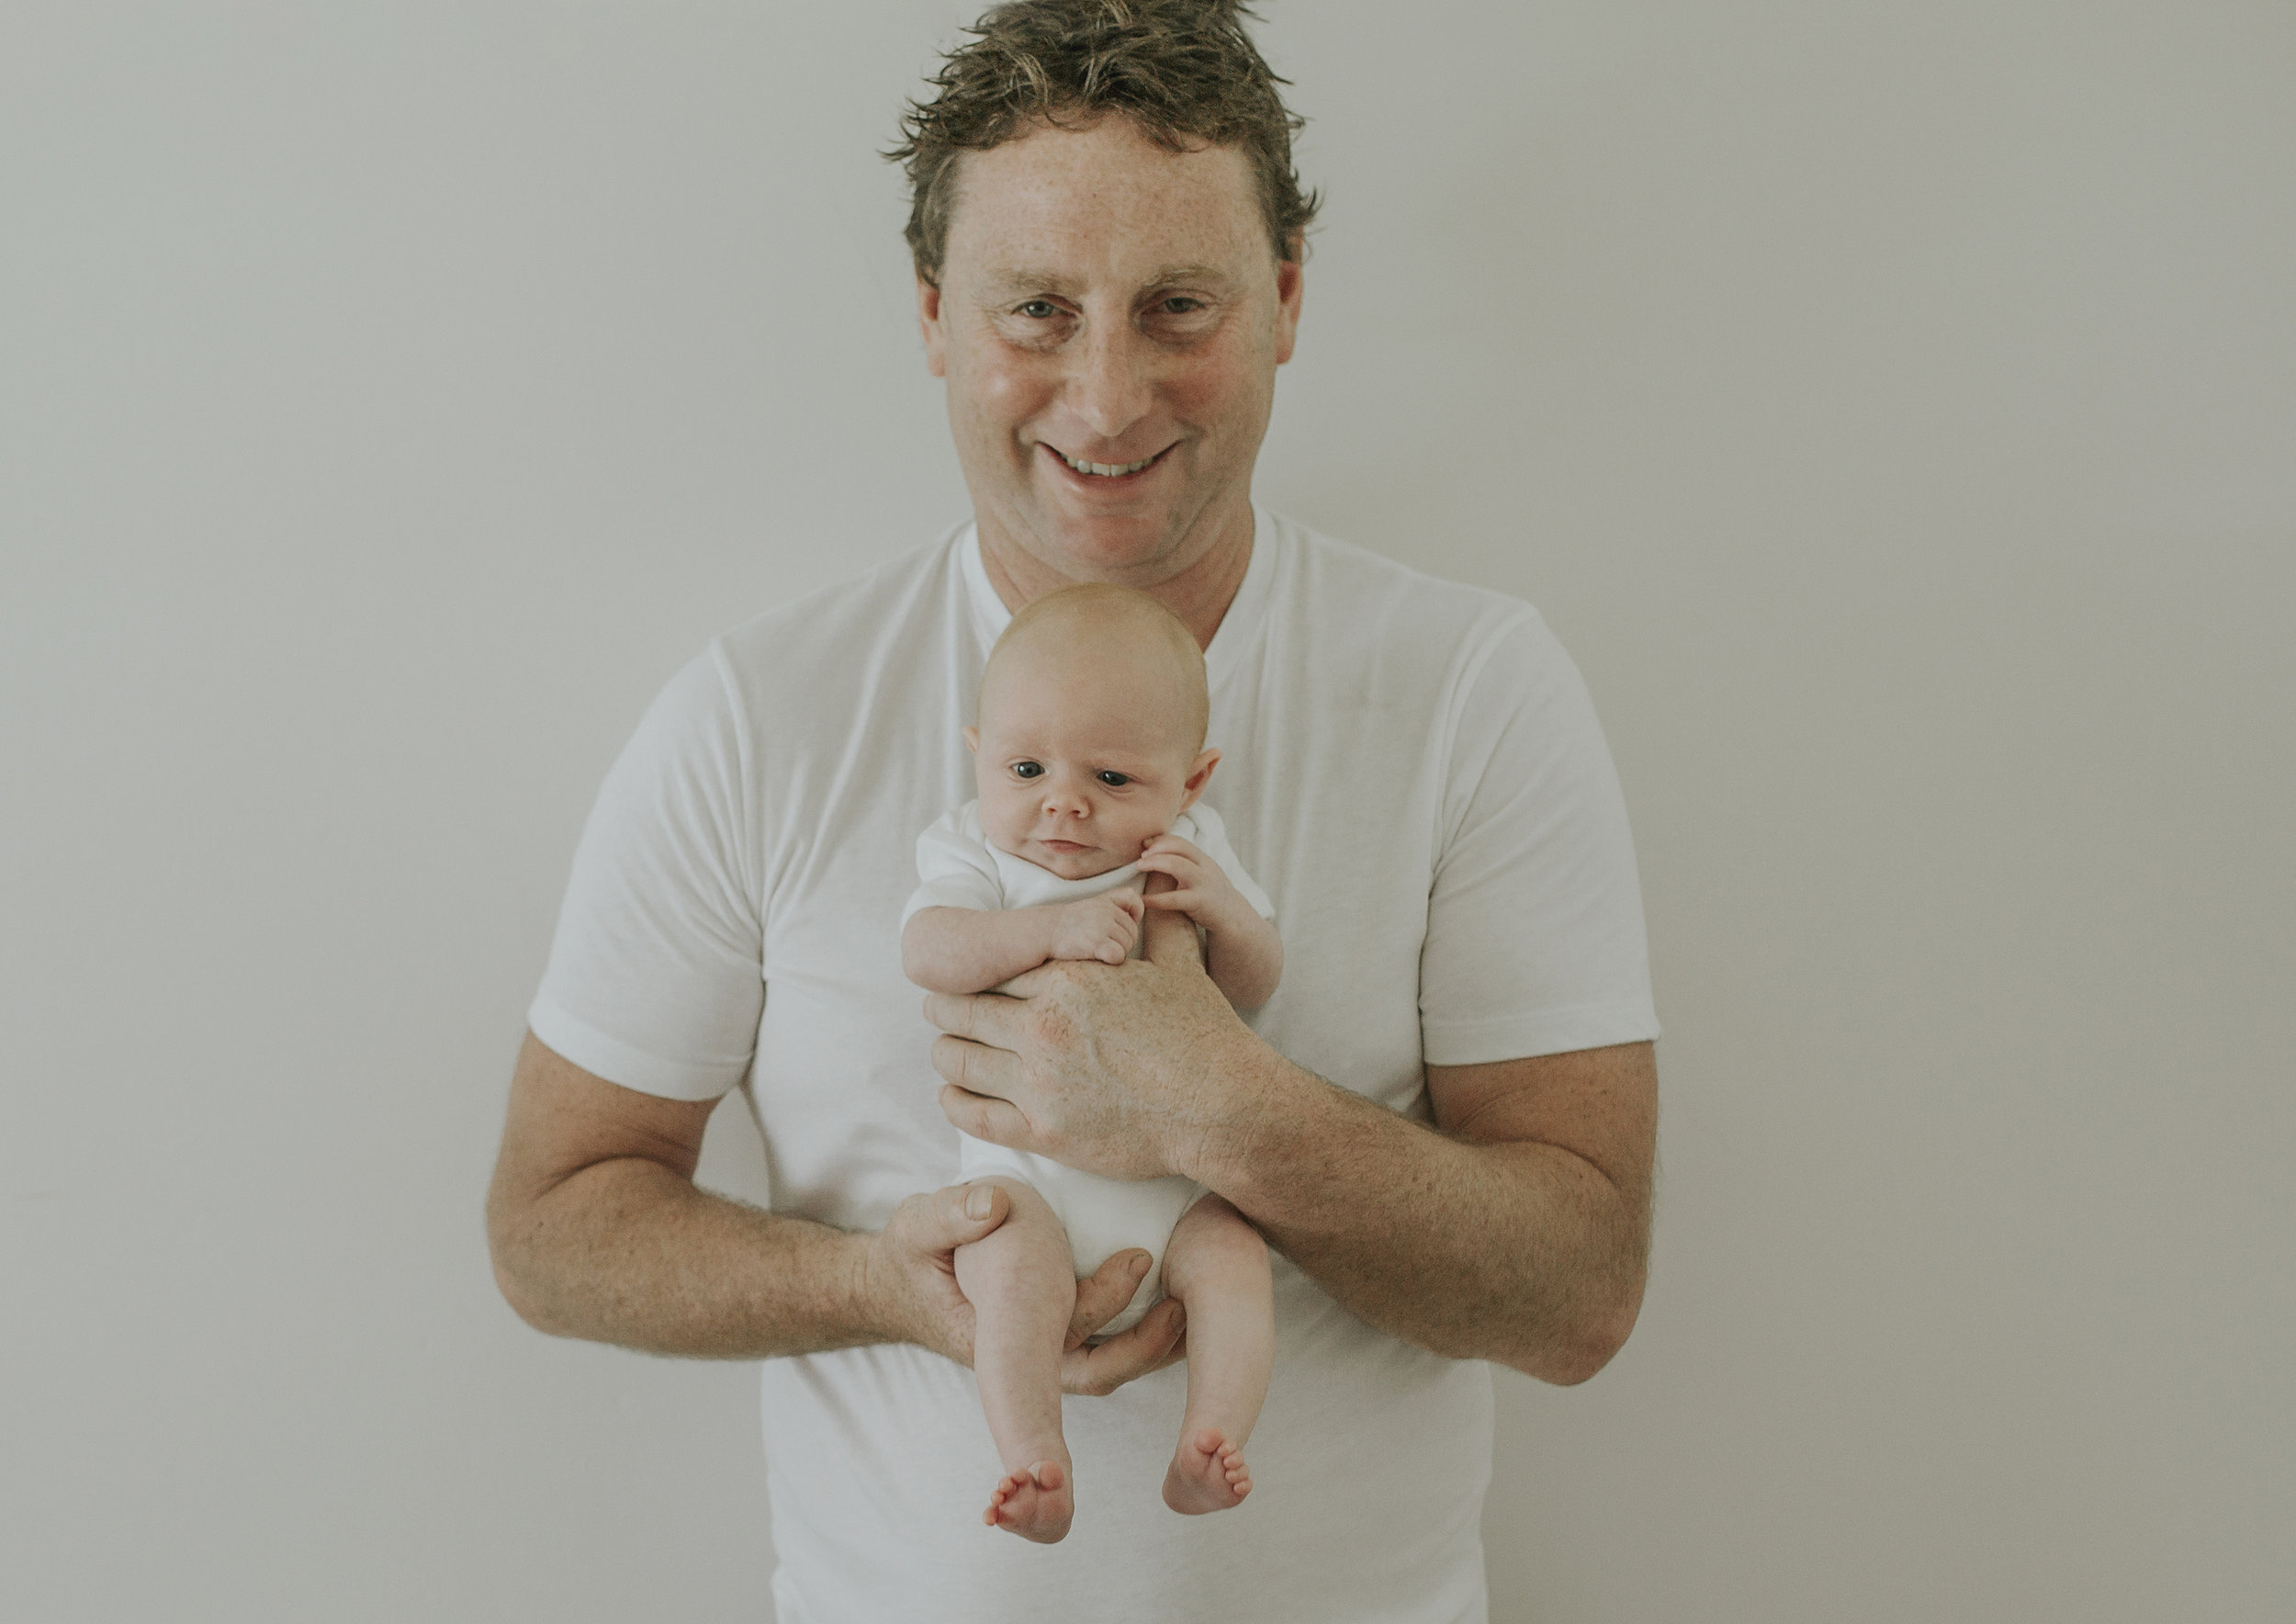 This Dad's a natural with his newborn baby girl